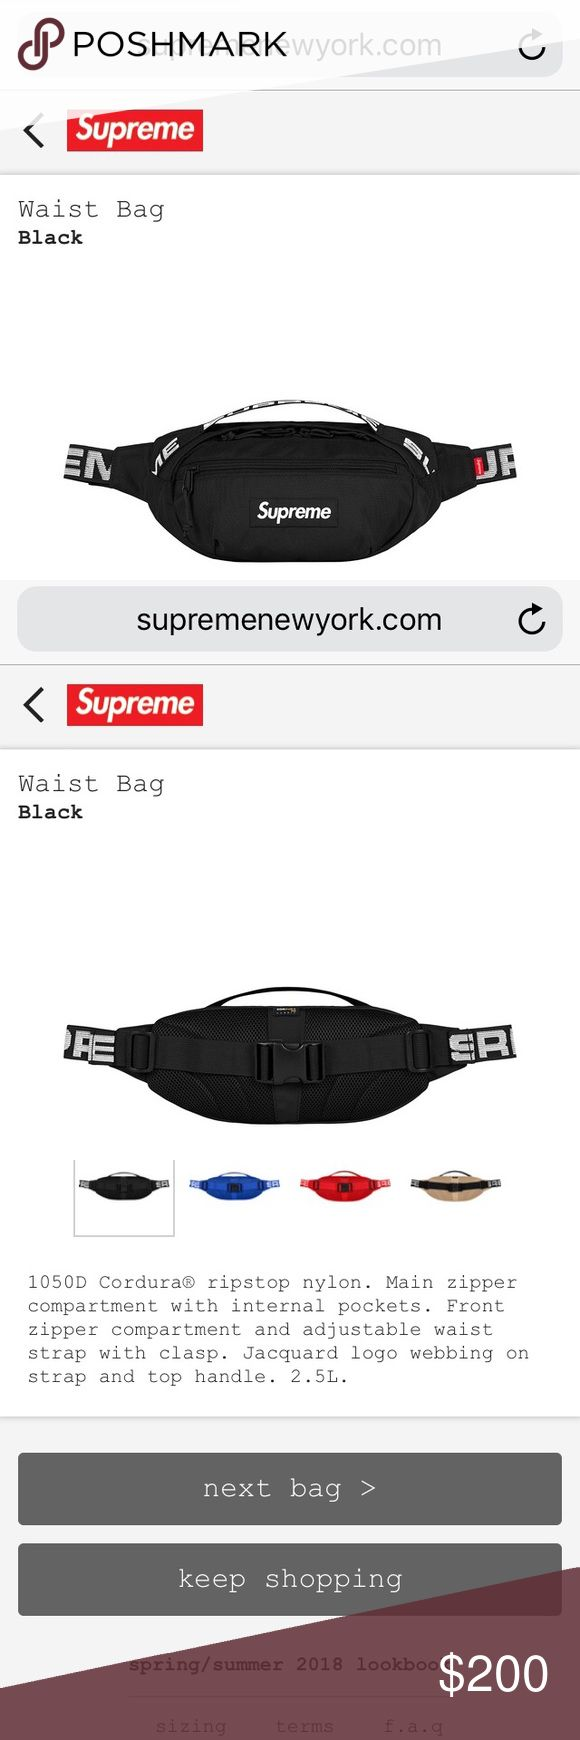 2018 Black Supreme Waist Bag Straight from the website, 100% authentic. SOLD OUT IN STORES AND ONLINE Supreme Bags